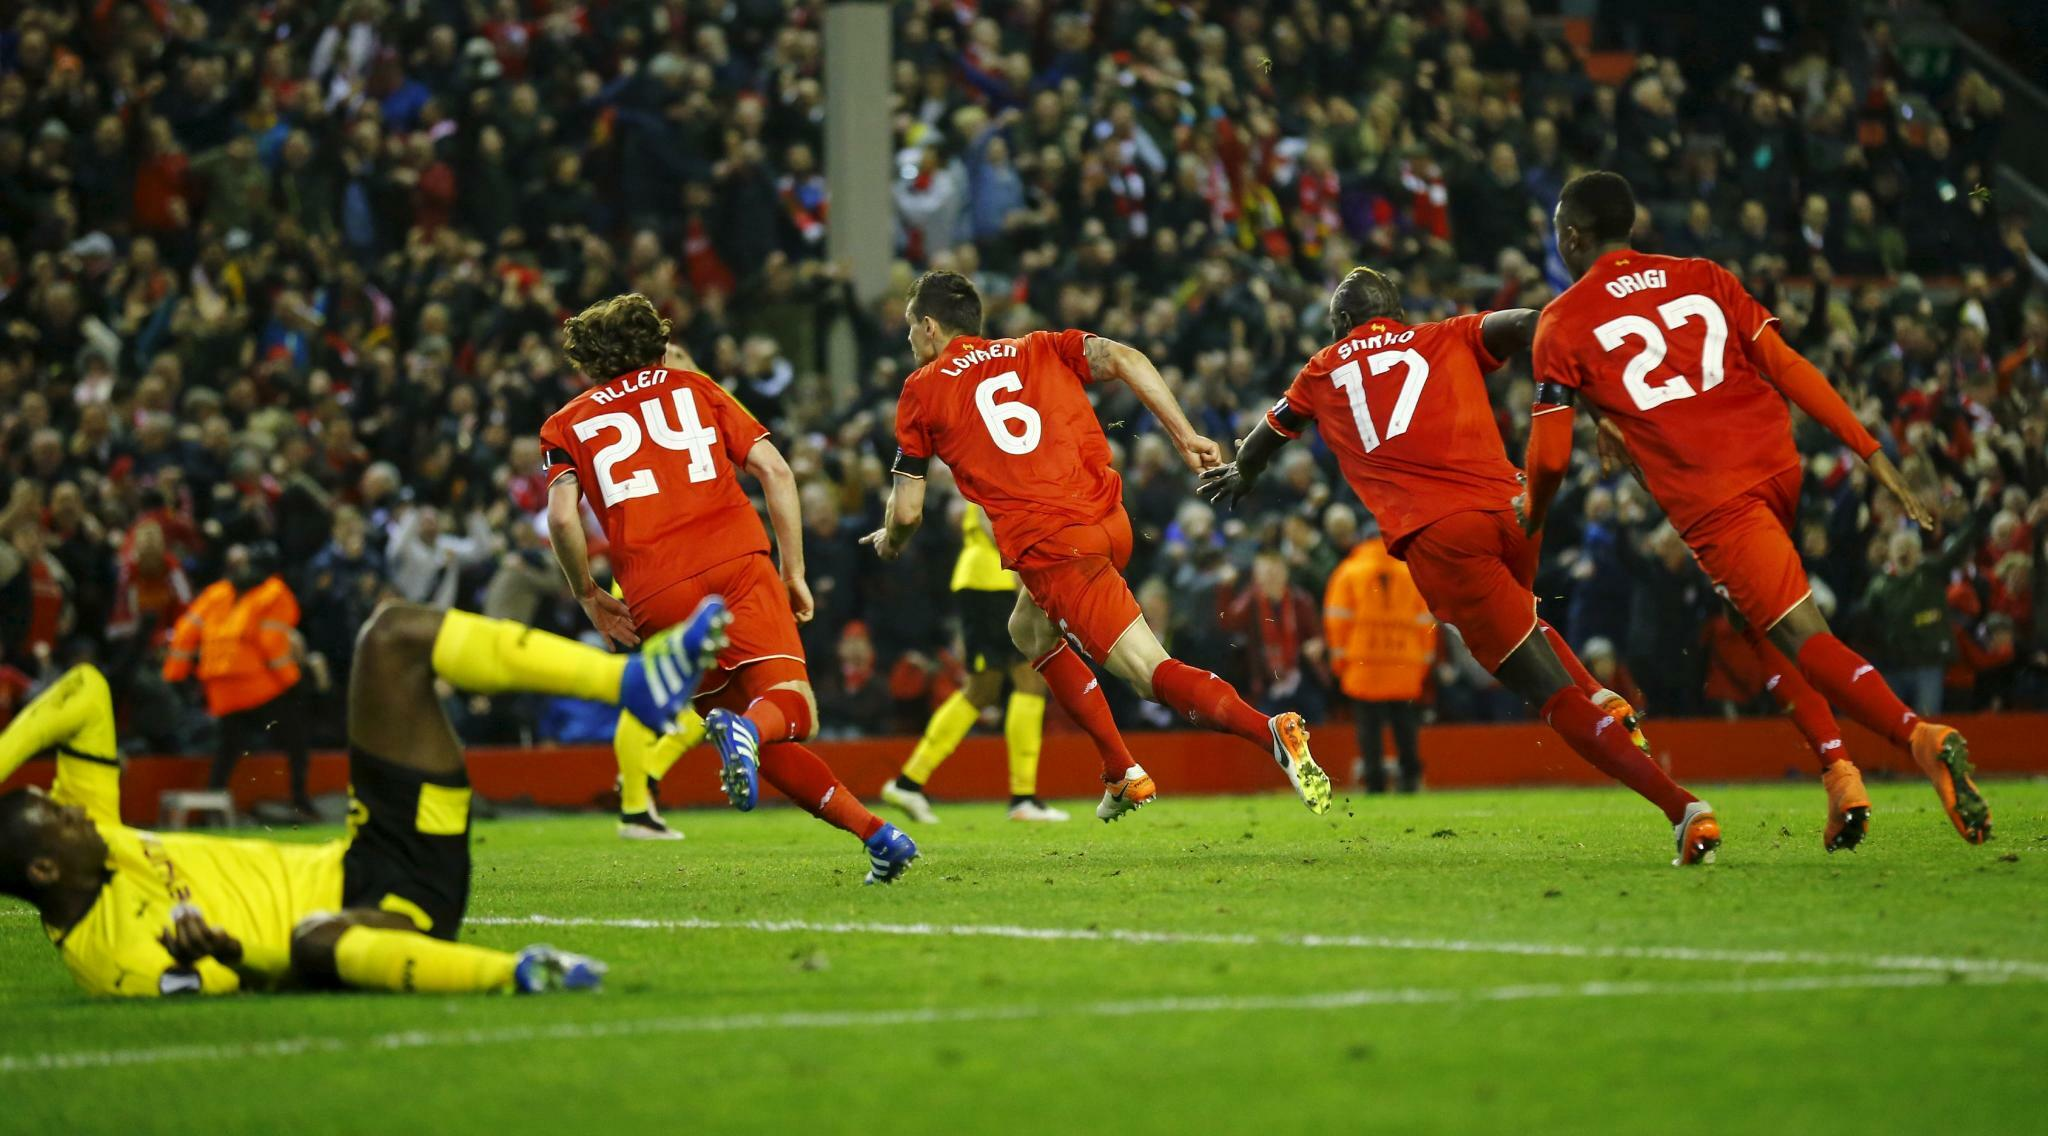 liverpool vs dortmund - photo #7